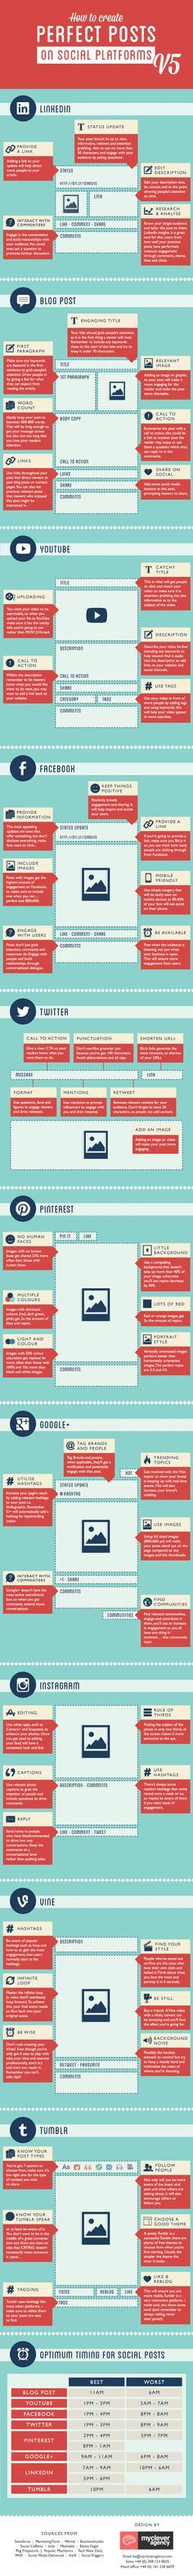 373 best SOCIAL MEDIA MARKETING images on Pinterest Social media - resume social media